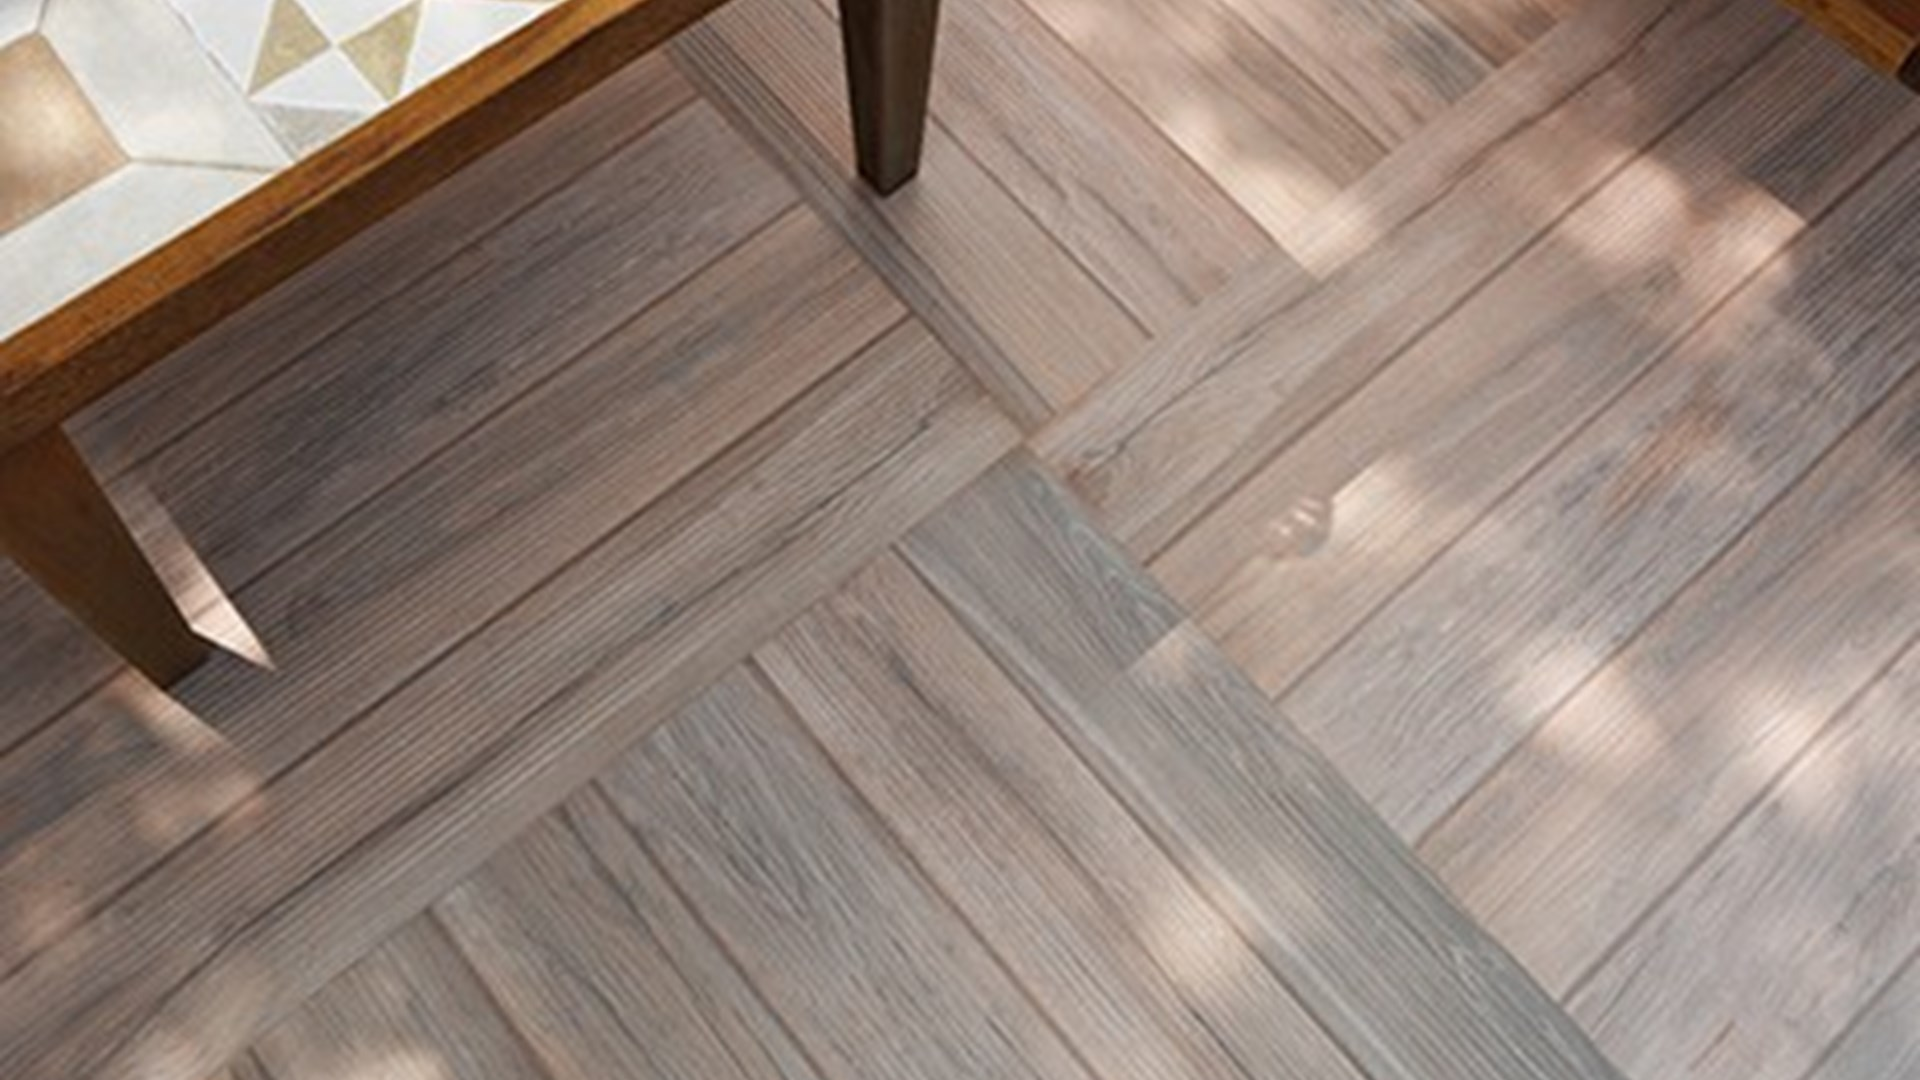 Wood effect tiles 10 reasons to choose wood effect tiles dailygadgetfo Choice Image